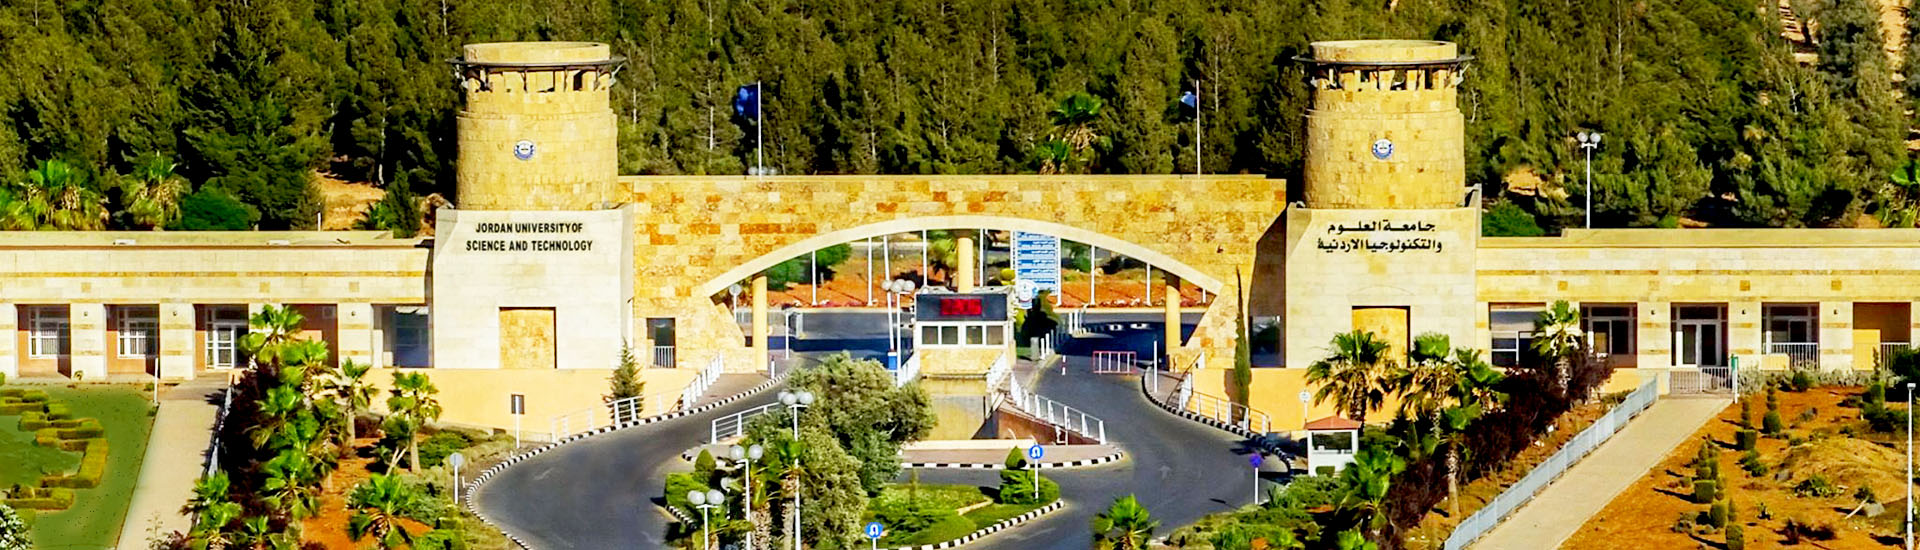 jordan university of science and technology alumni